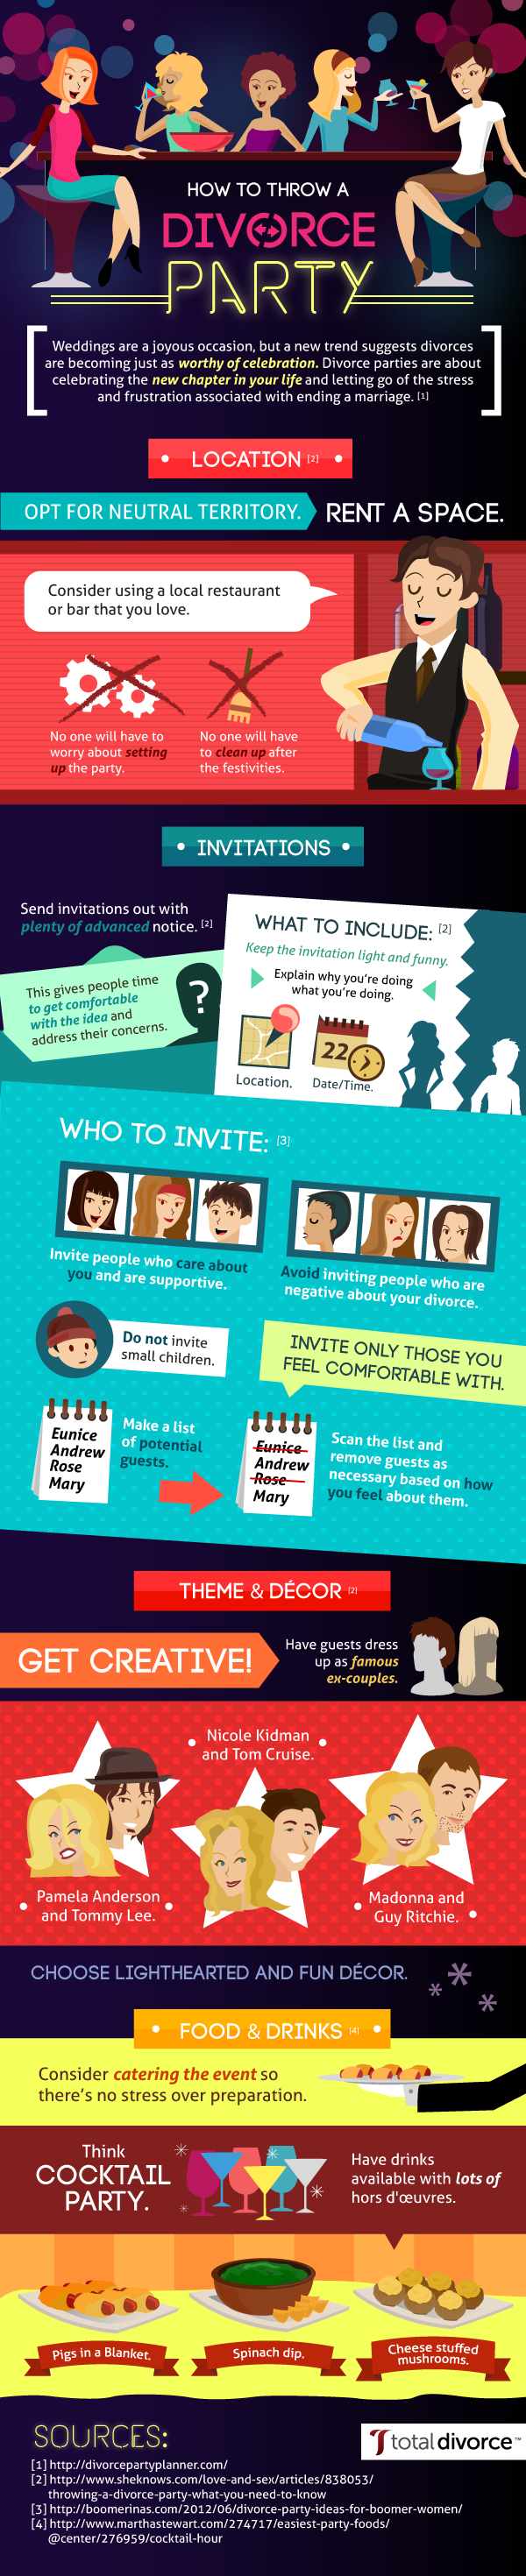 The Step-By-Step Guide To Throwing A Divorce Party   Divorce party ...